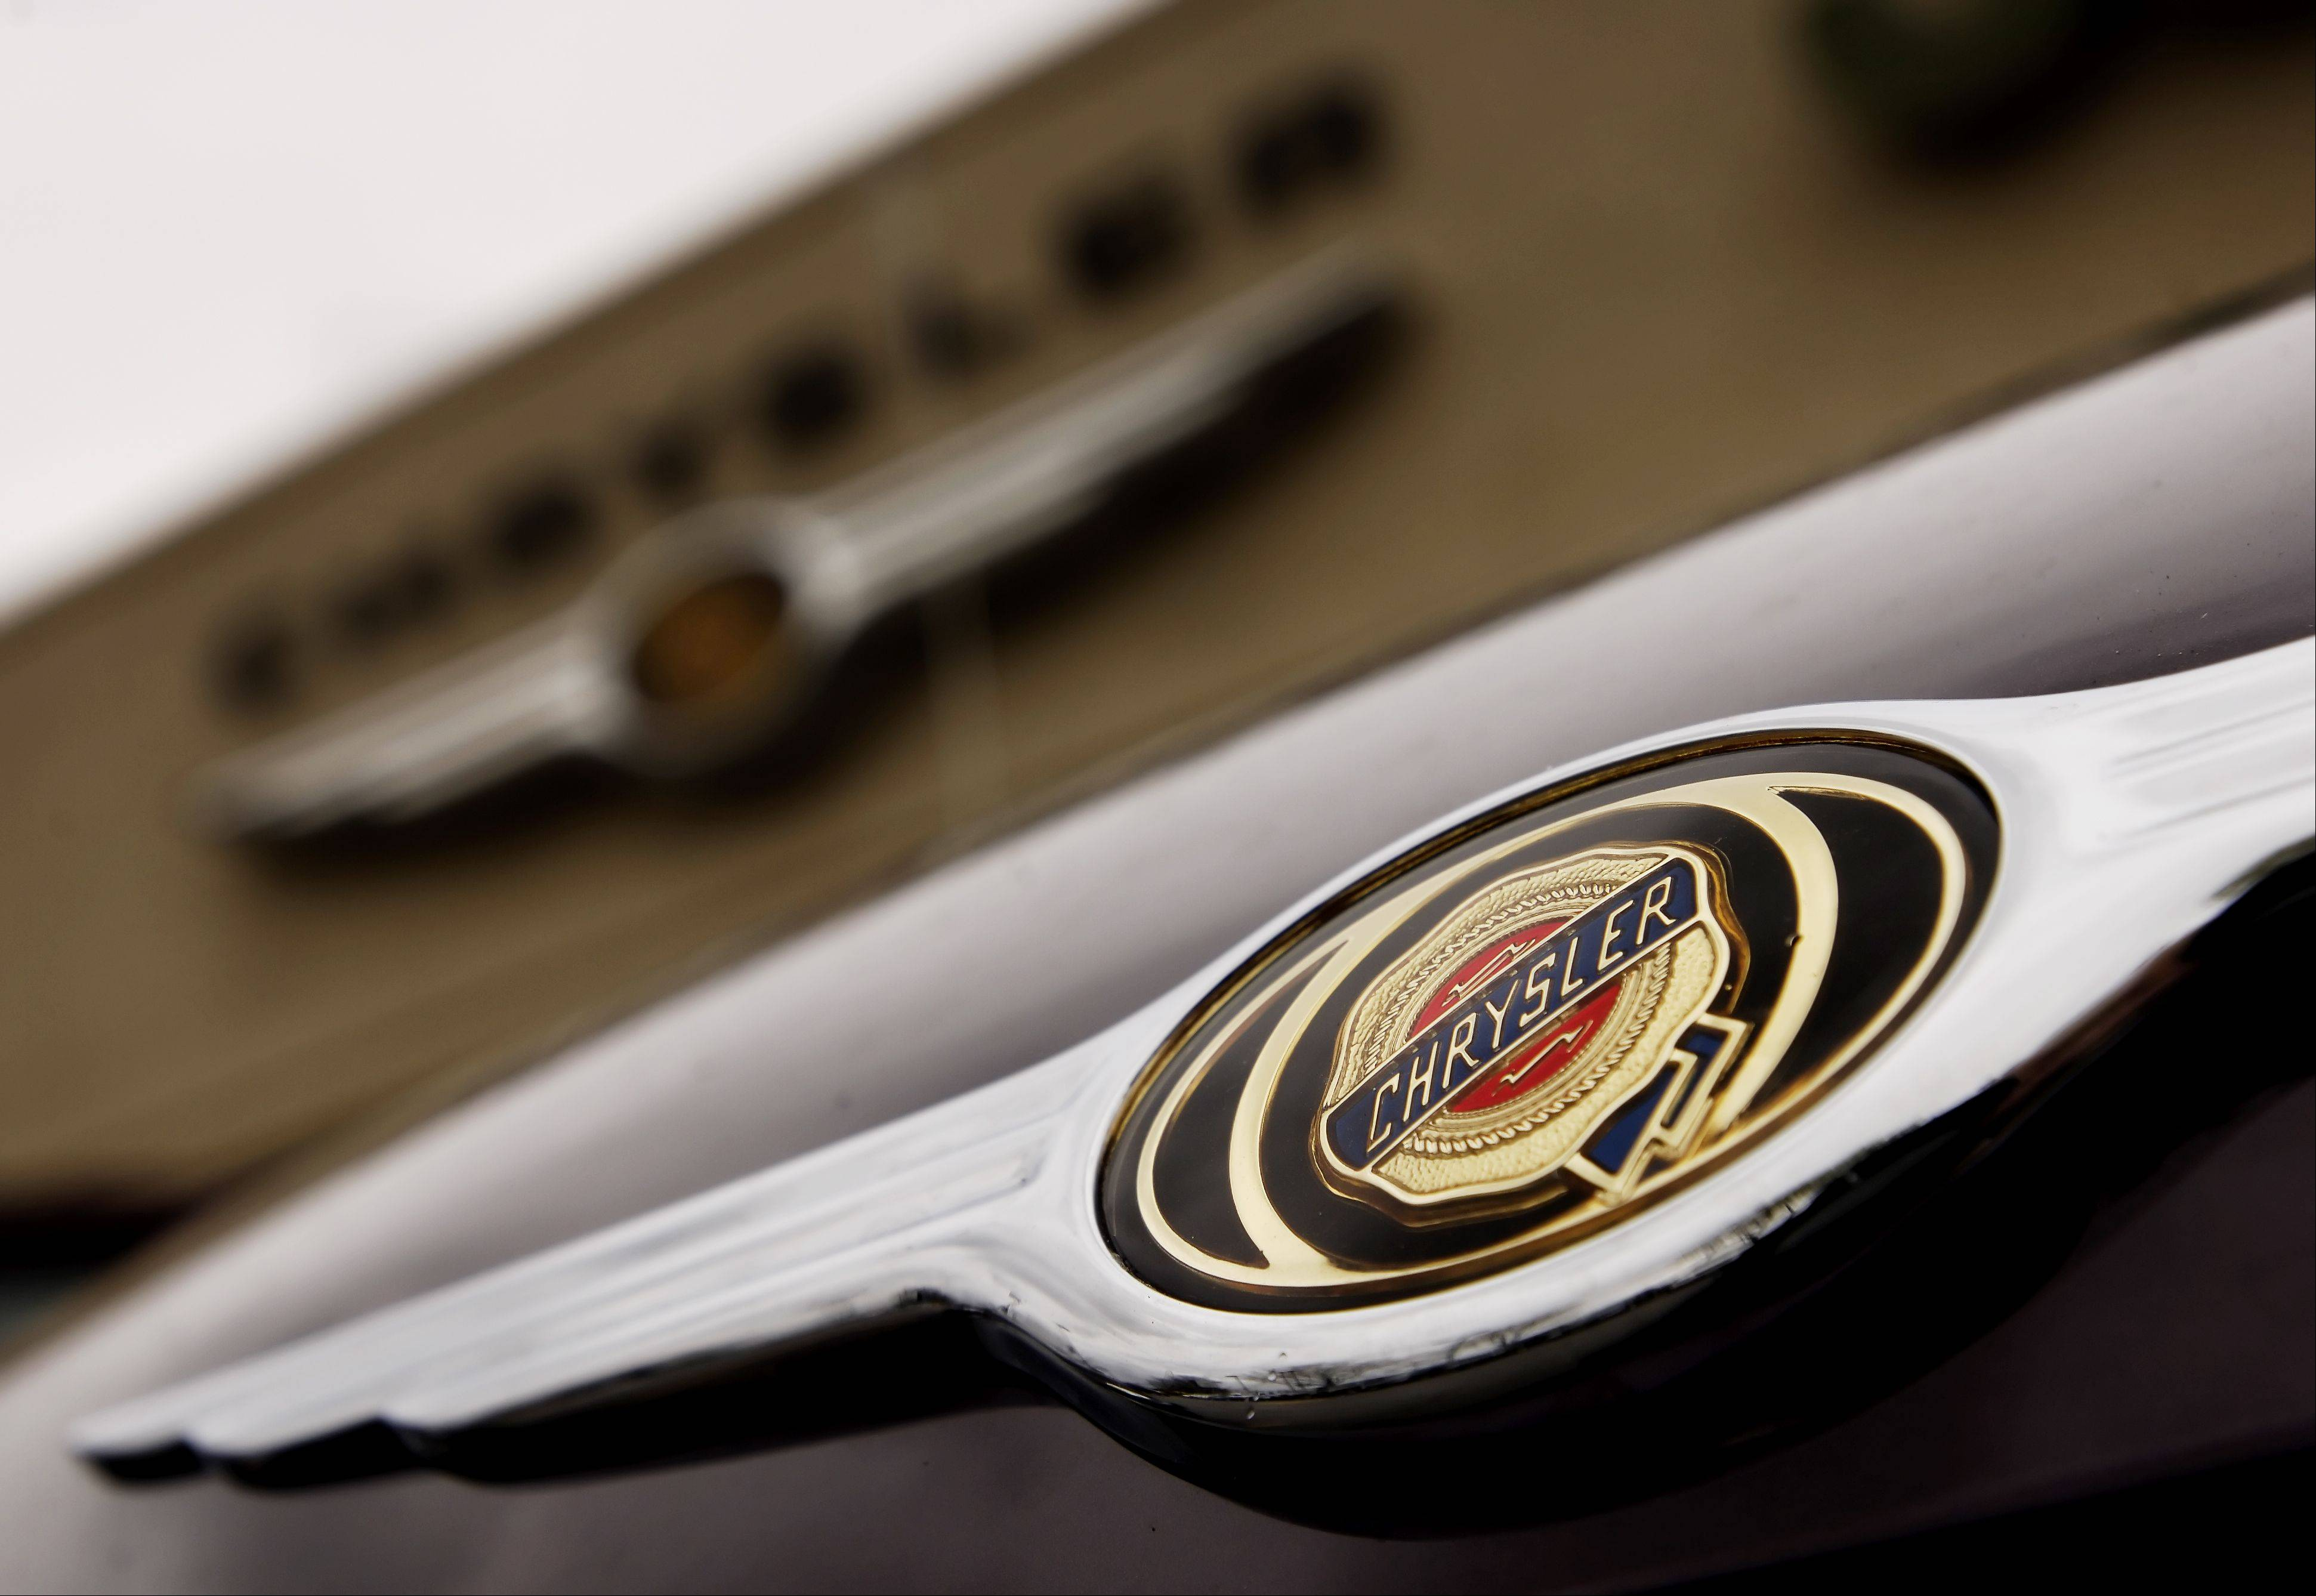 Chrysler Group's sales picked up in the second quarter thanks to strong U.S. demand for trucks and SUVs, but the company still cut its full-year sales and profit targets after a slower than expected start to the year.